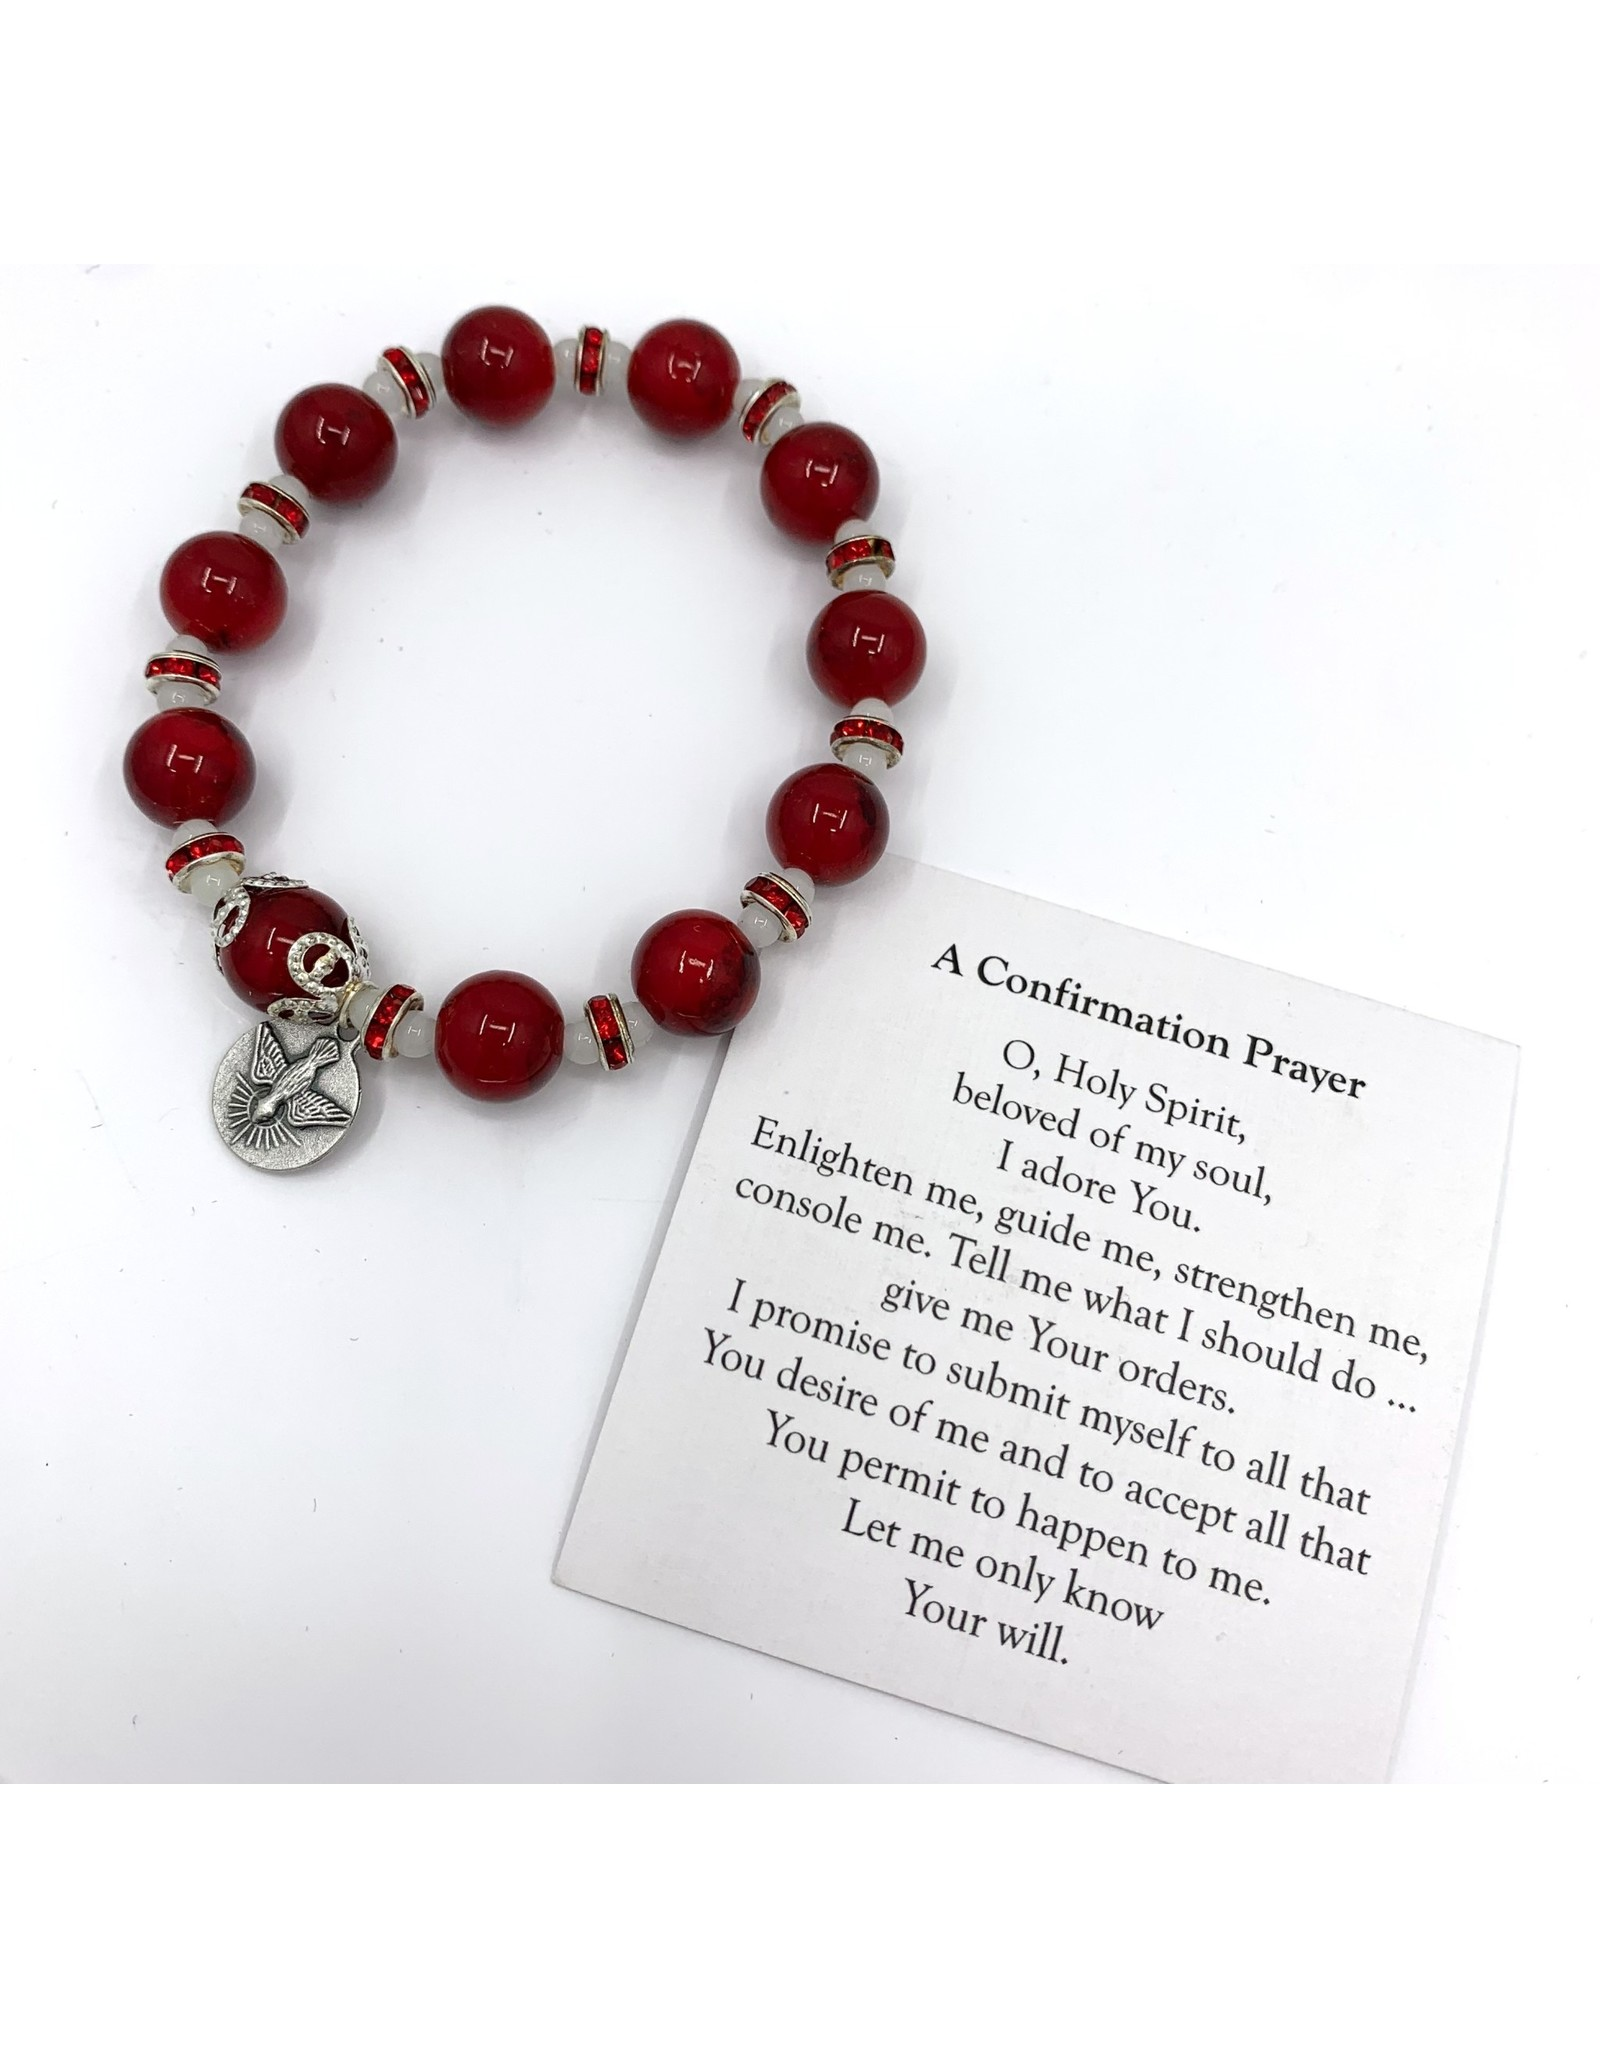 Confirmation Bracelet - with Holy Spirit Charm